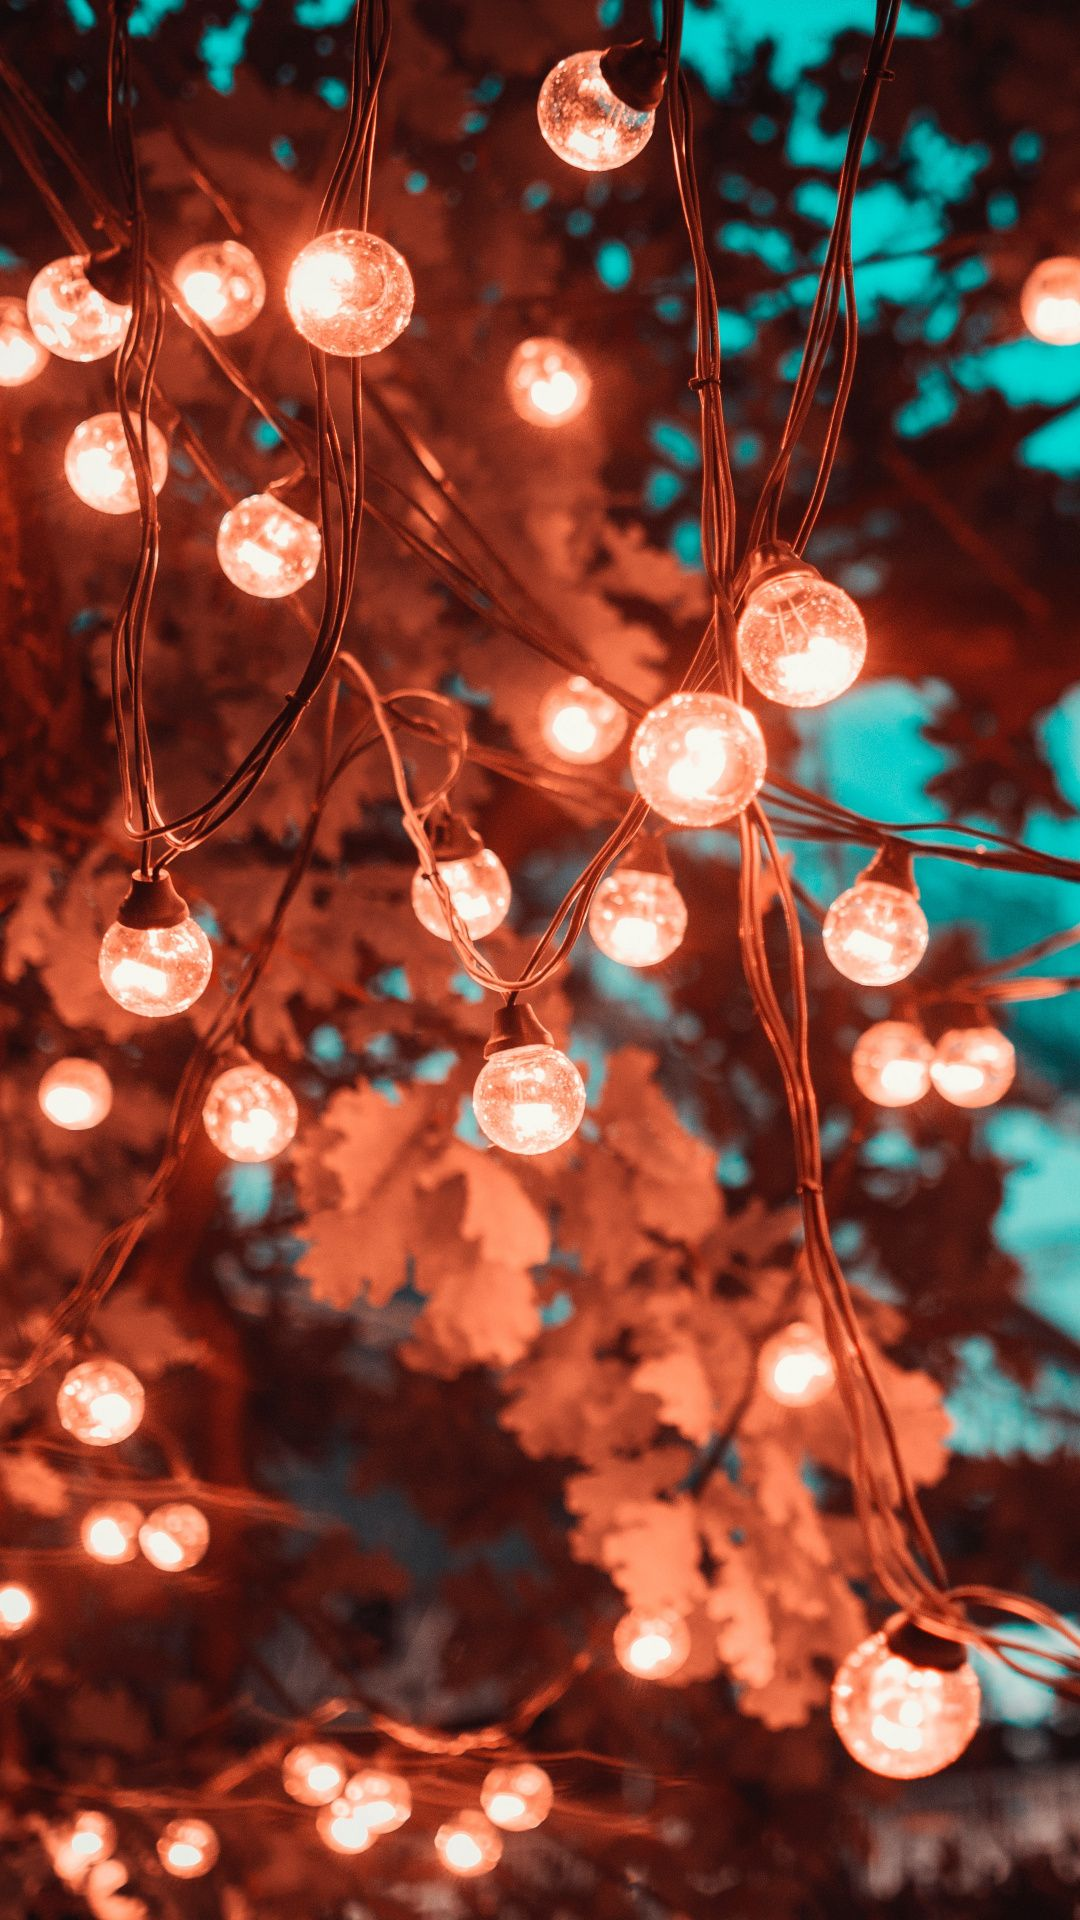 Wallpapers Light Emitting Diode Lighting Christmas Lights Branch Incandescent Christmas Phone Wallpaper Iphone Wallpaper Lights Christmas Lights Wallpaper